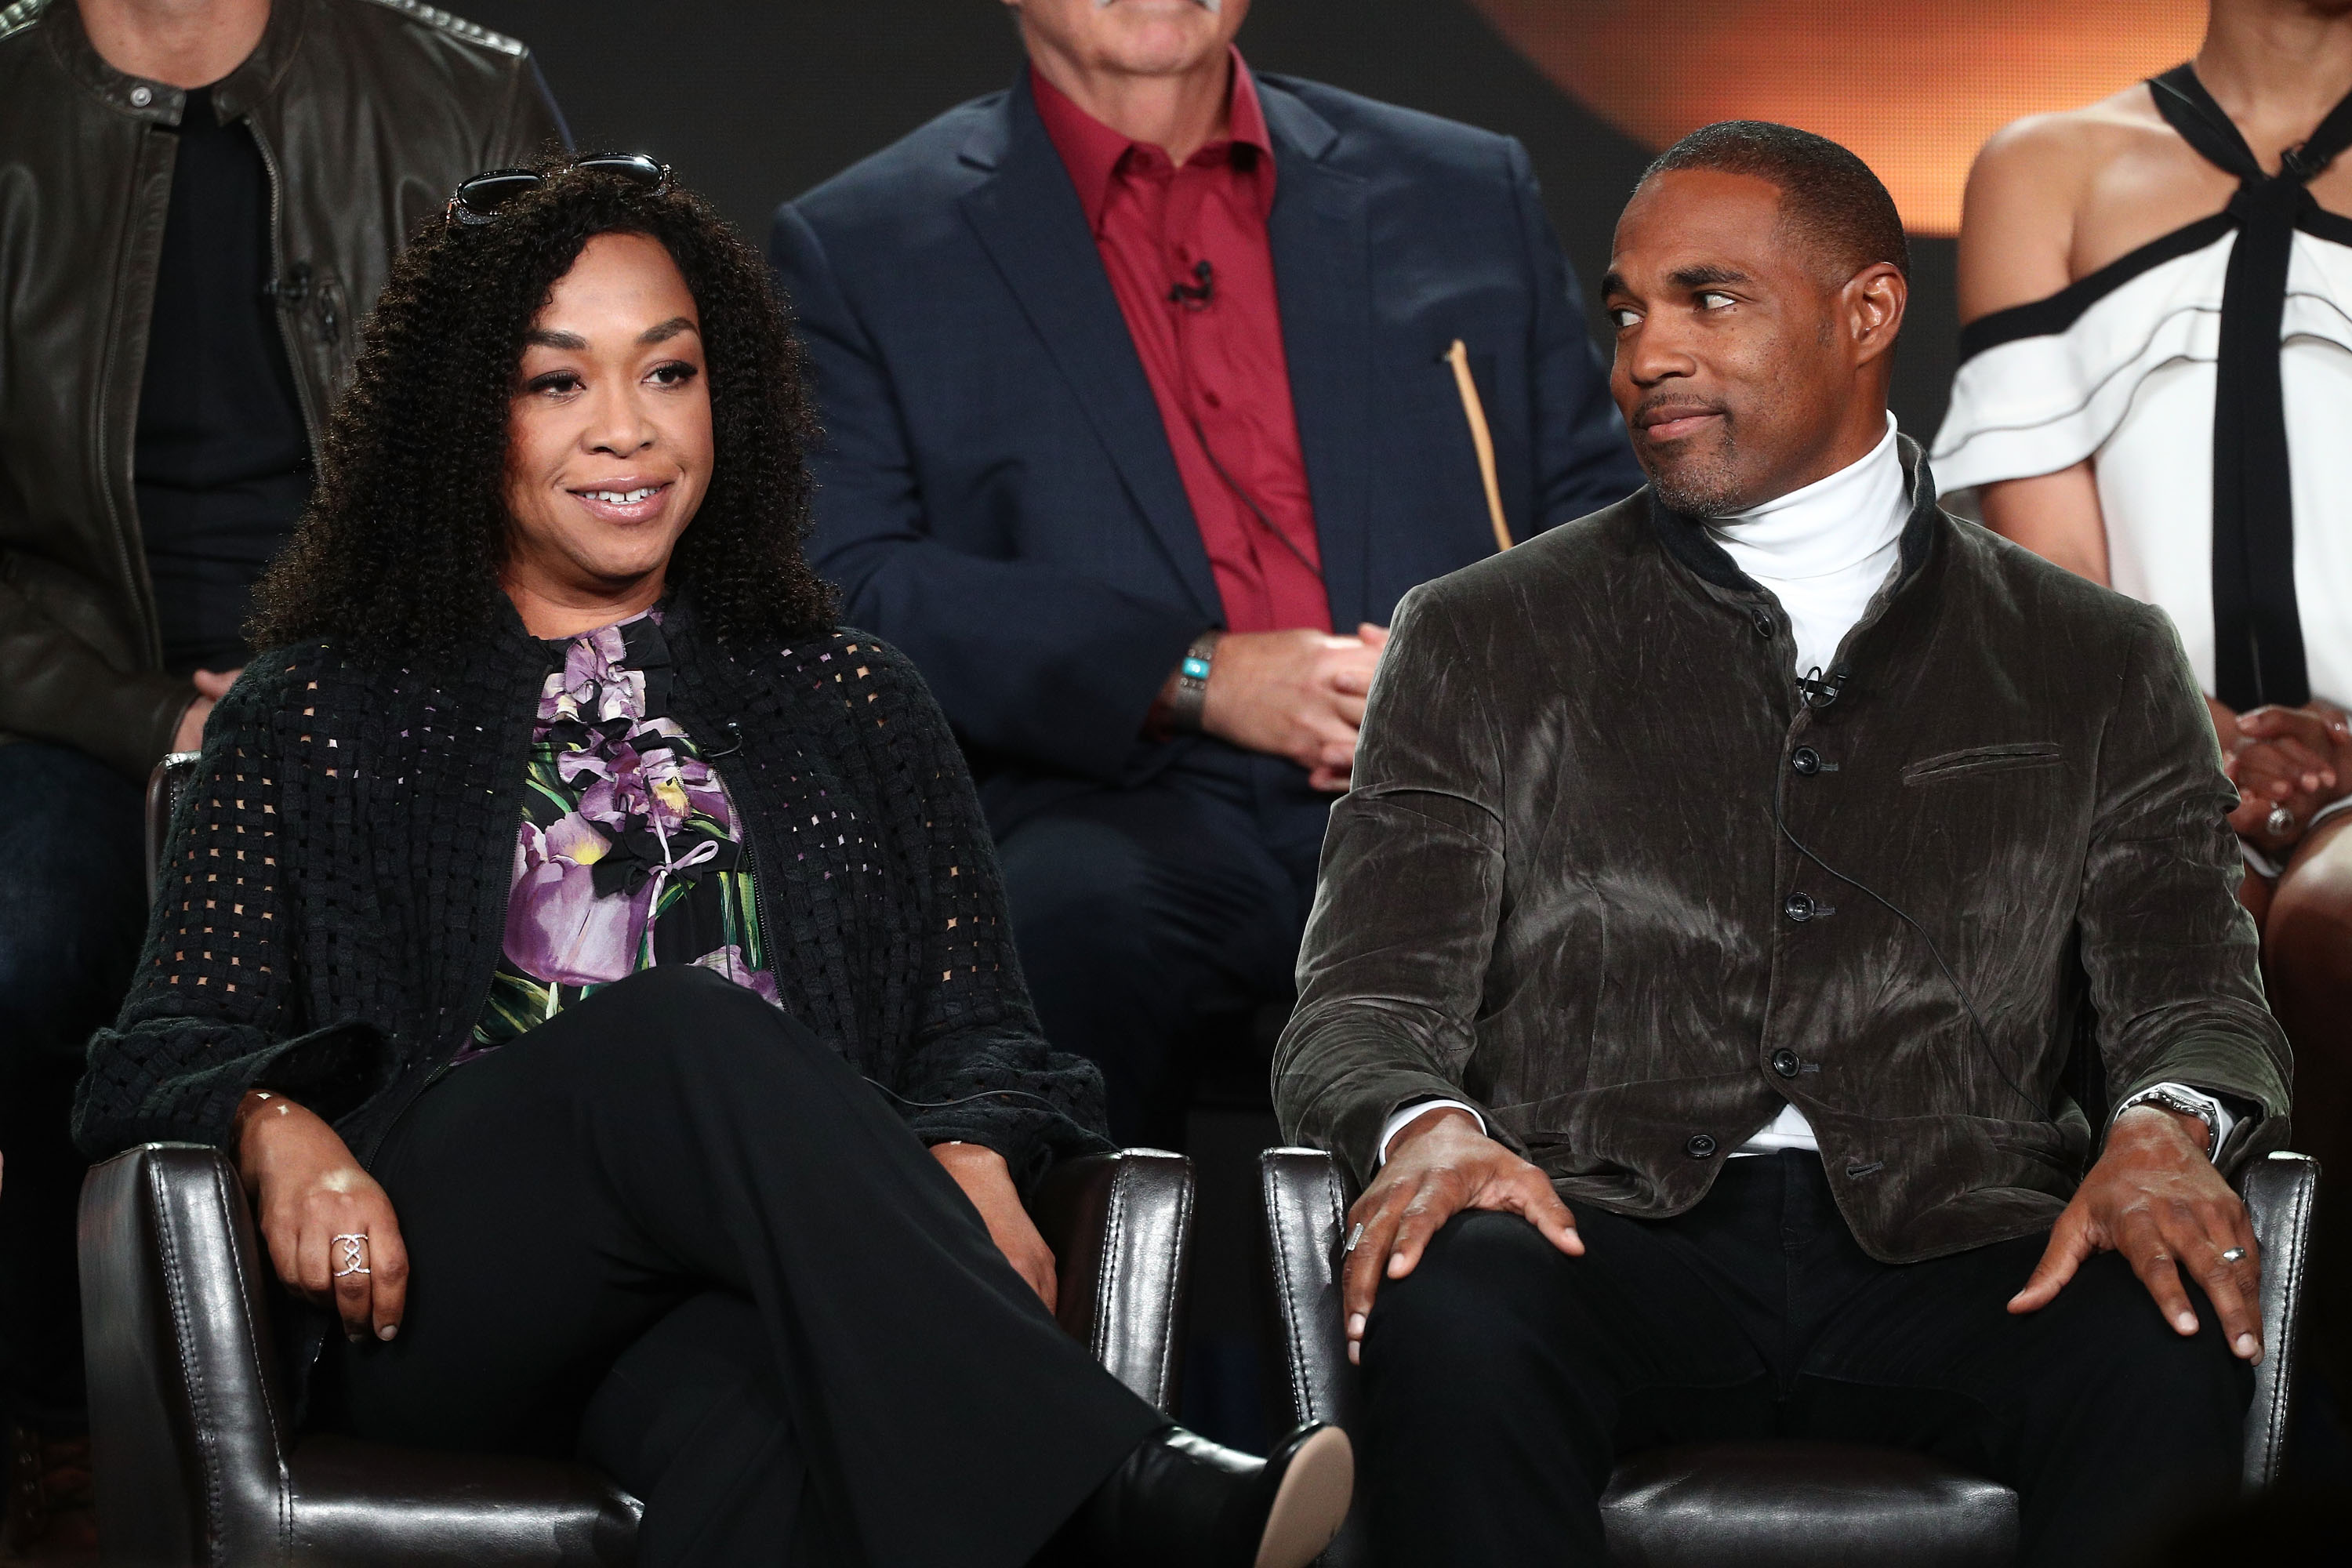 Shonda Rhimes sits in a chair speaking on stage, actor Jason George sits on her left and looks enthralled by what she is saying.